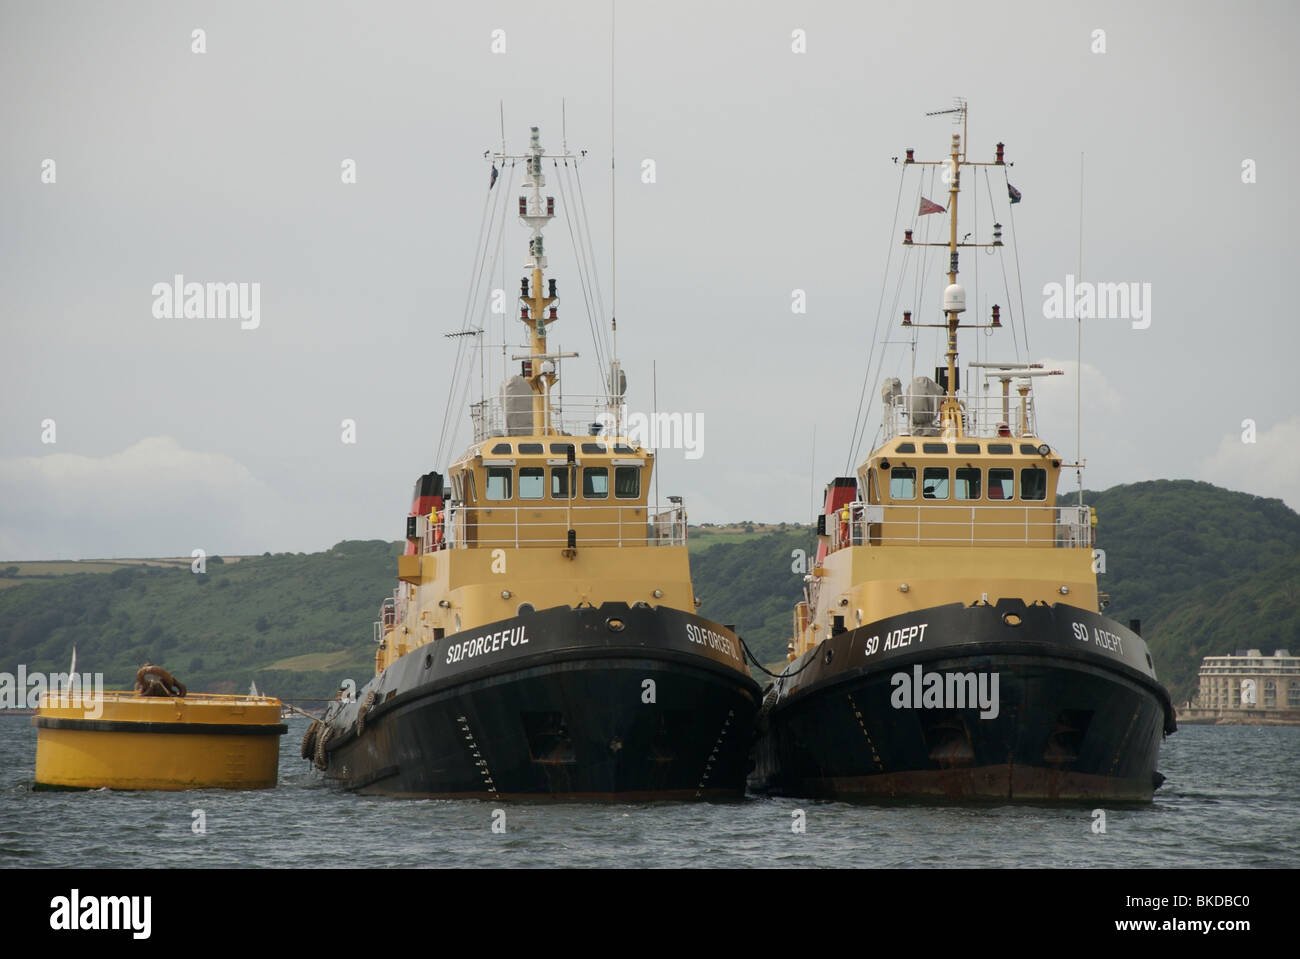 The SD Forceful and SD Adept tugboats, Plymouth Sound, Devon, England, UK - Stock Image